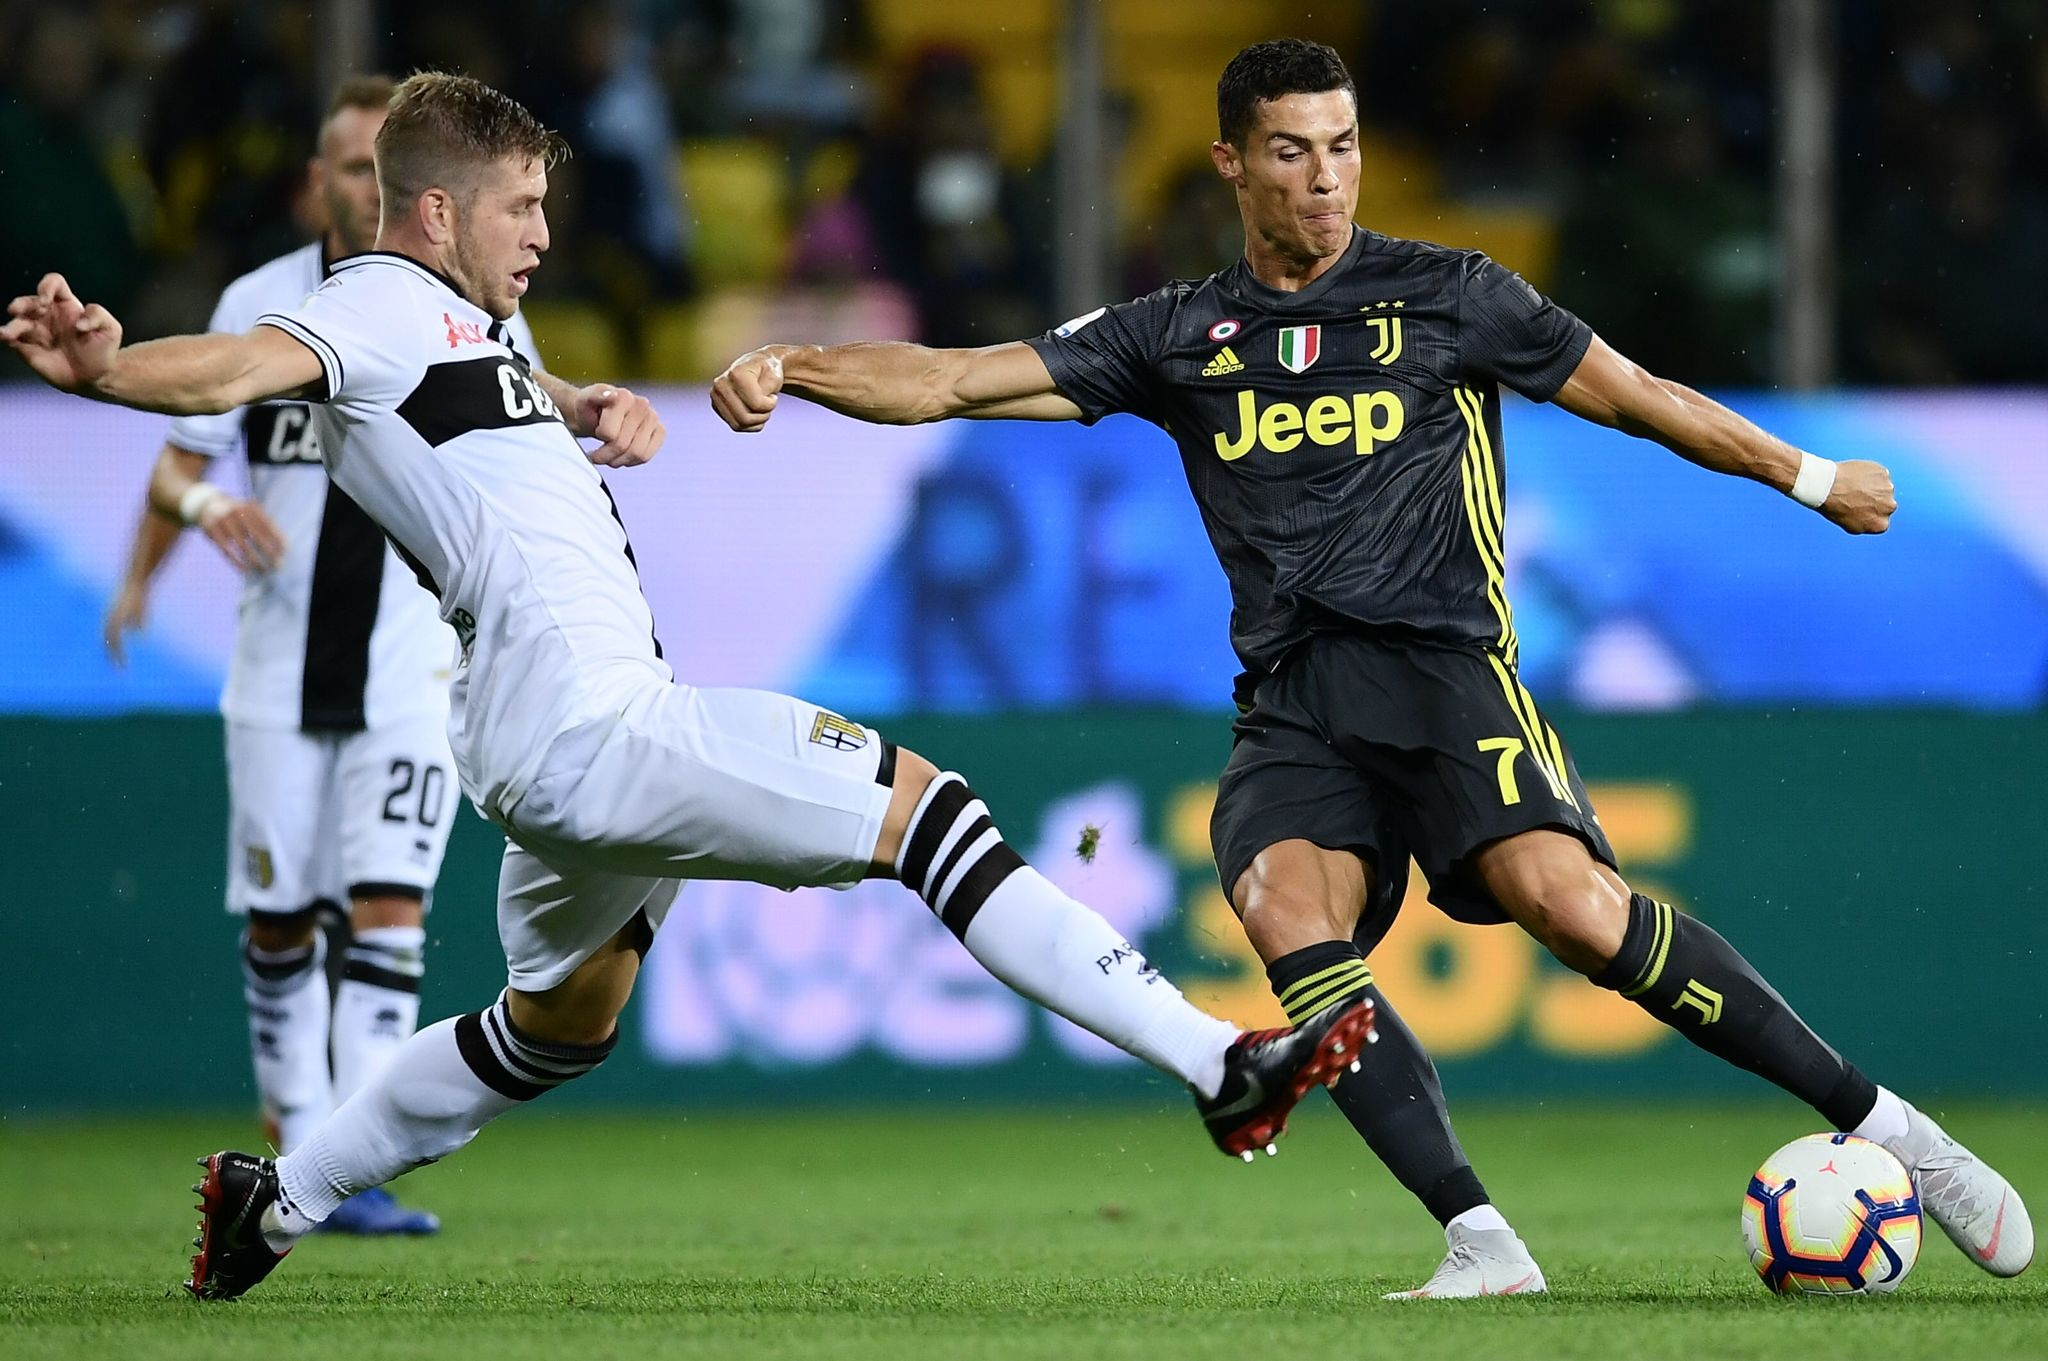 Italy - Serie A: Cristiano Ronaldo's plan to score his first